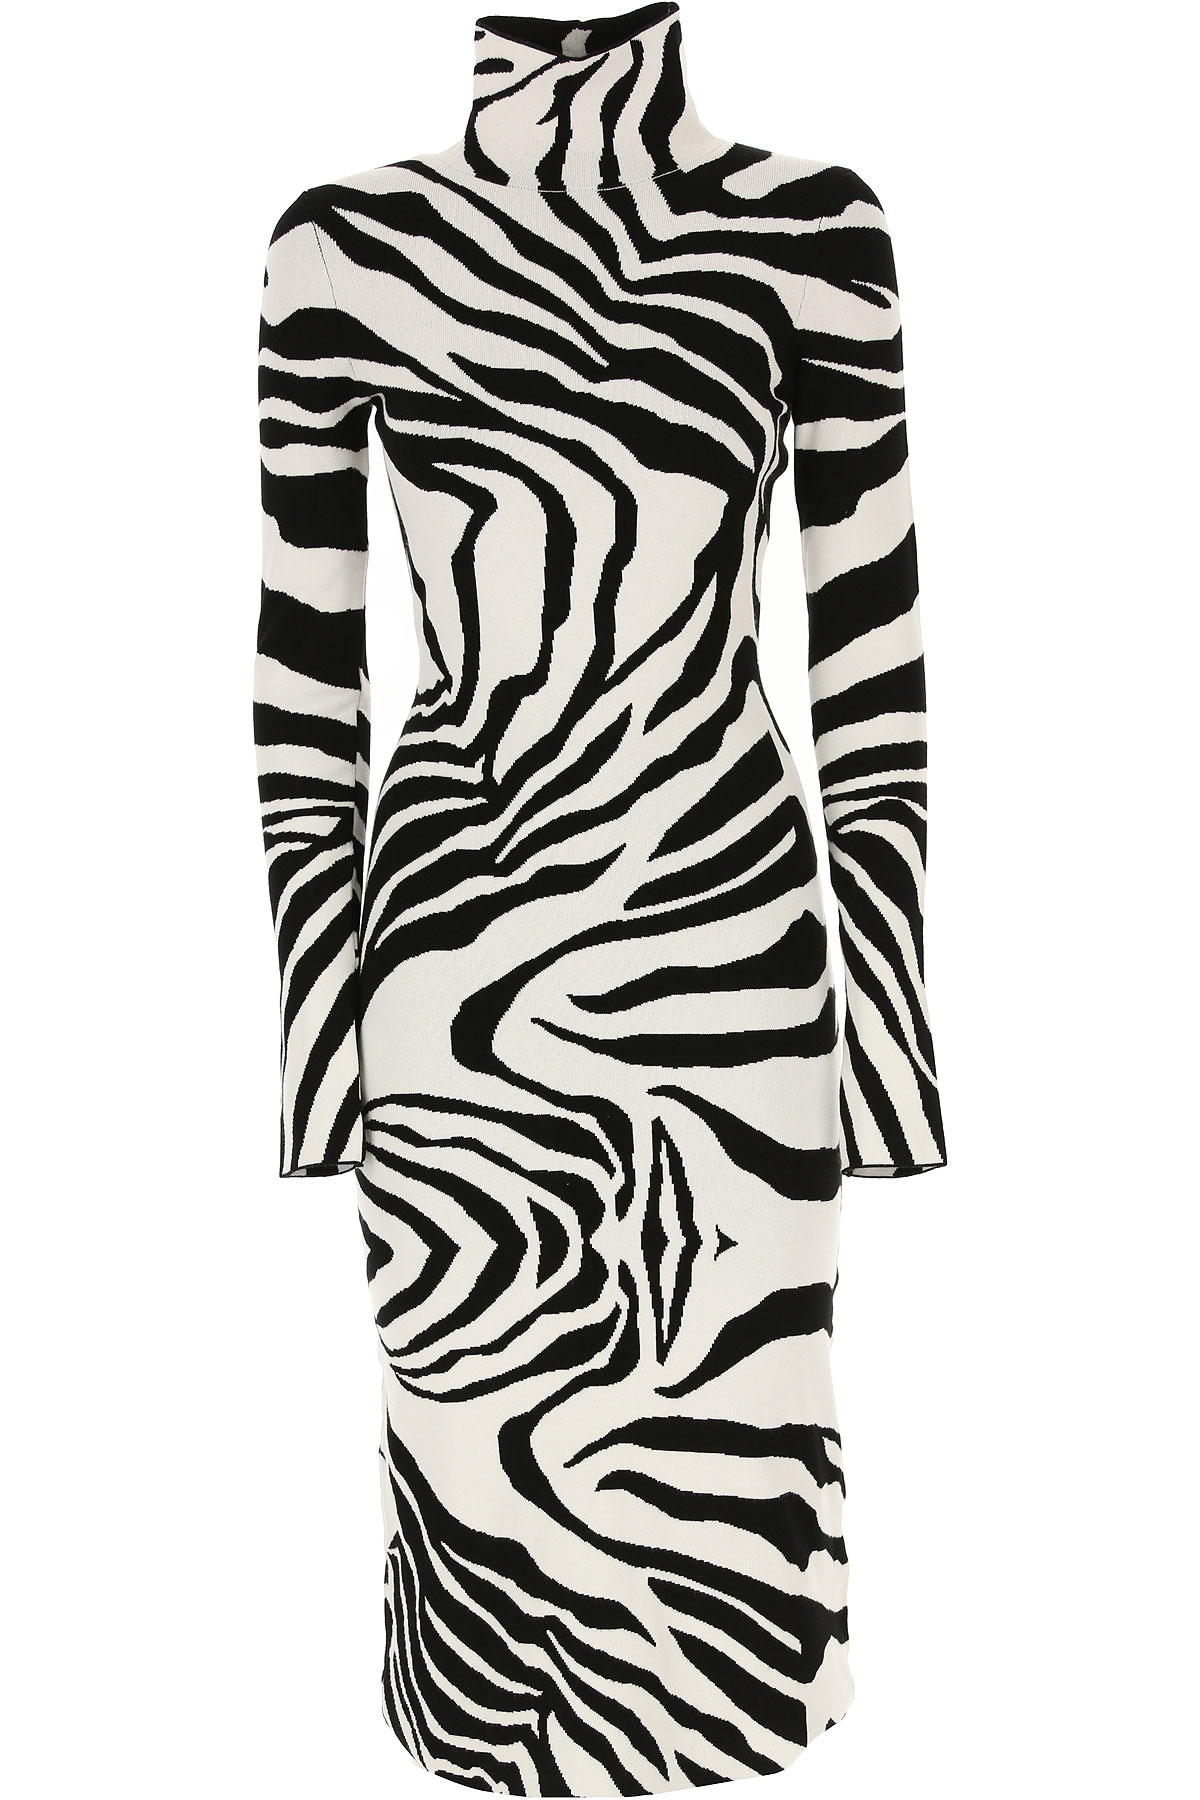 Roberto Cavalli Dress for Women, Evening Cocktail Party On Sale, White, Viscose, 2019, 4 6 8